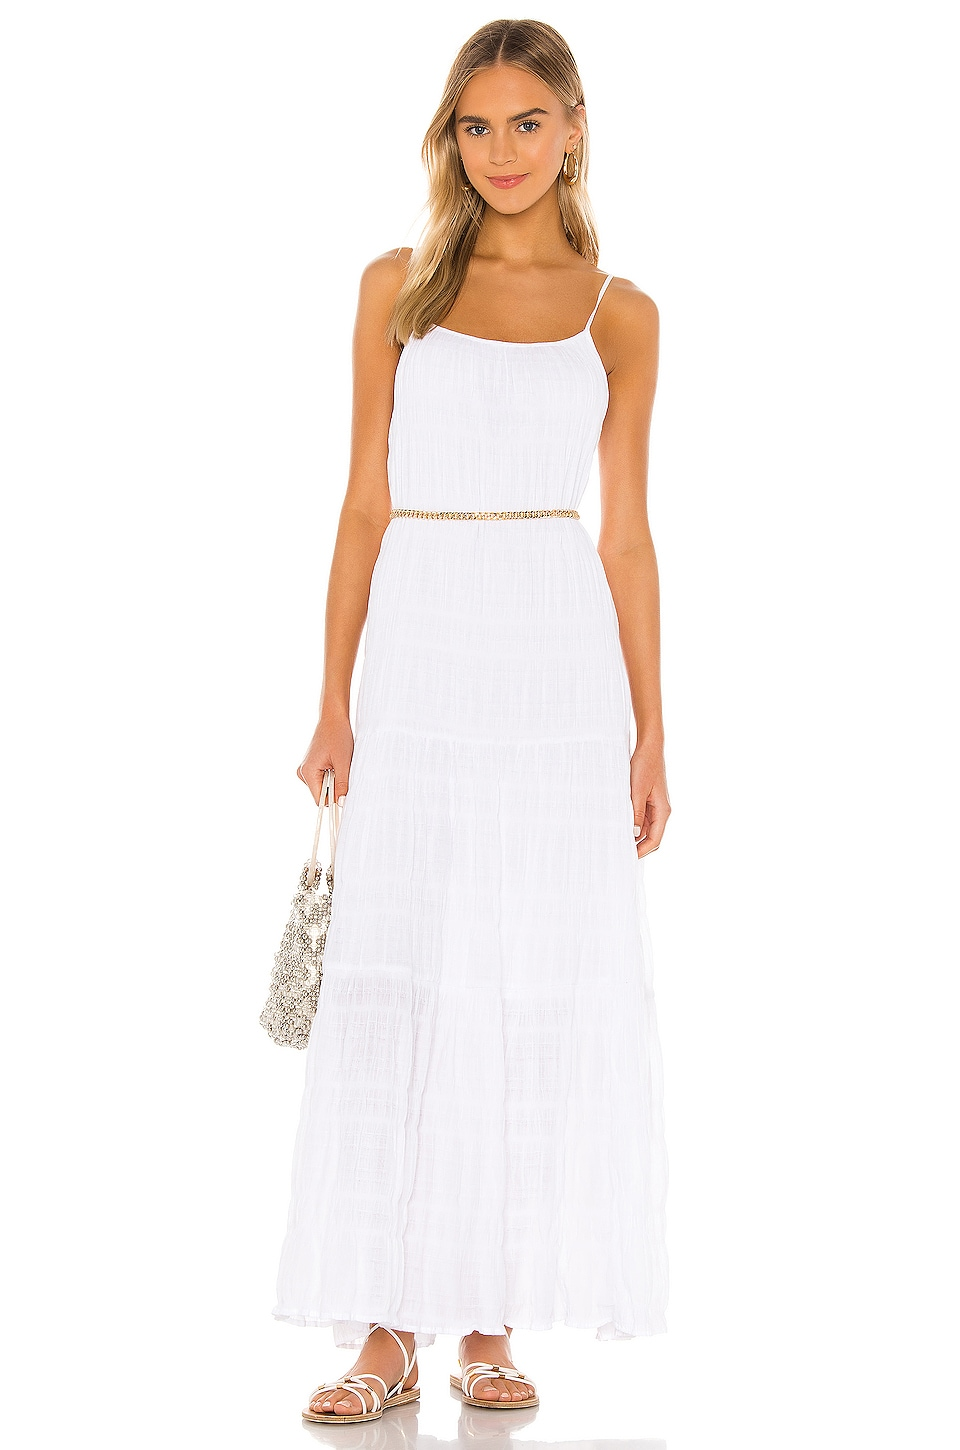 Roman Holiday Maxi Dress             BB Dakota                                                                                                       CA$ 182.55 14